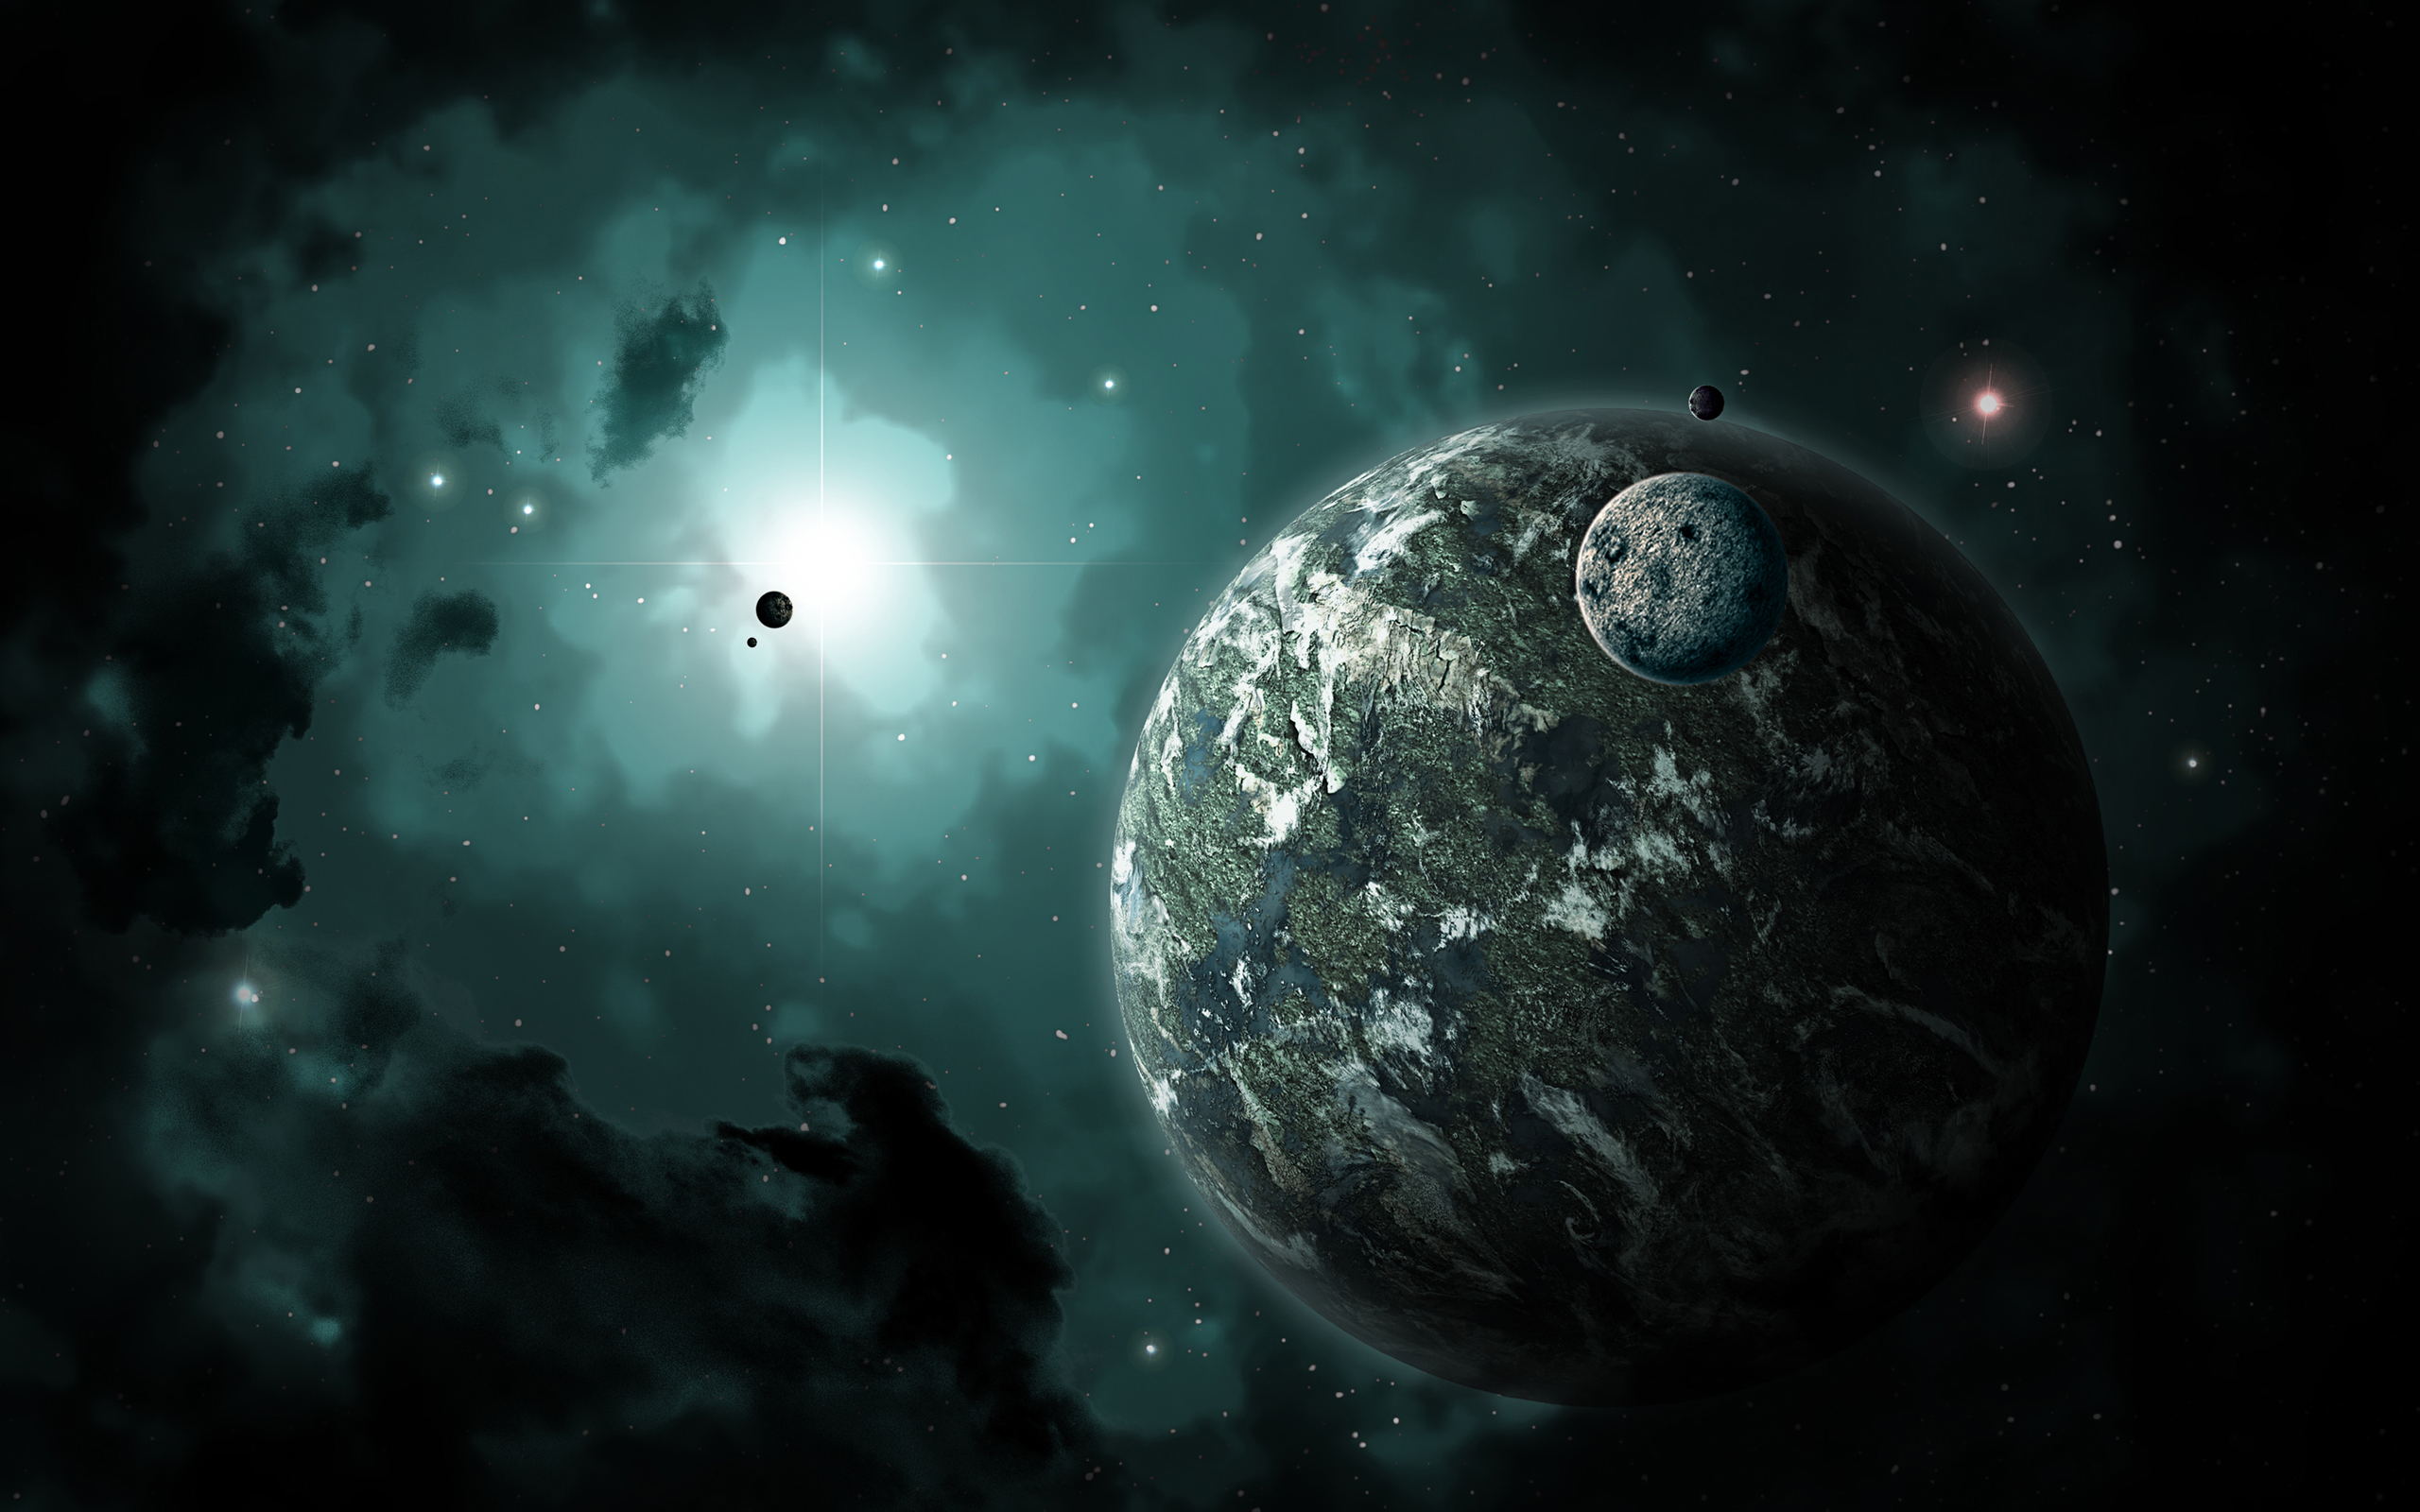 planets 3d windows background - photo #38